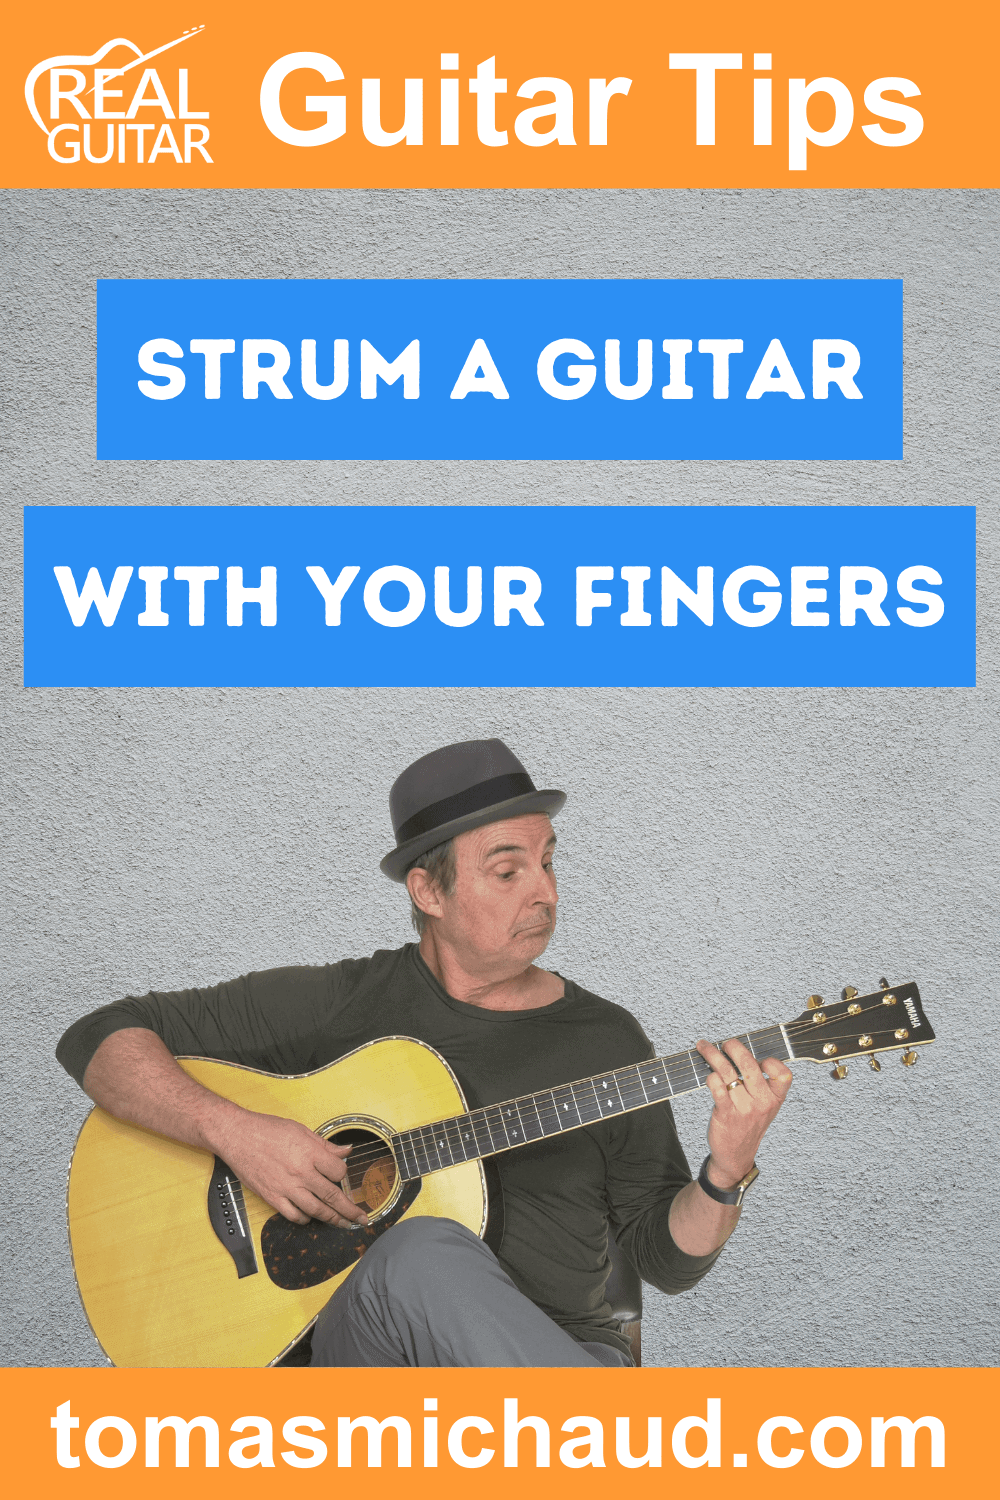 Strum a Guitar With Your Fingers